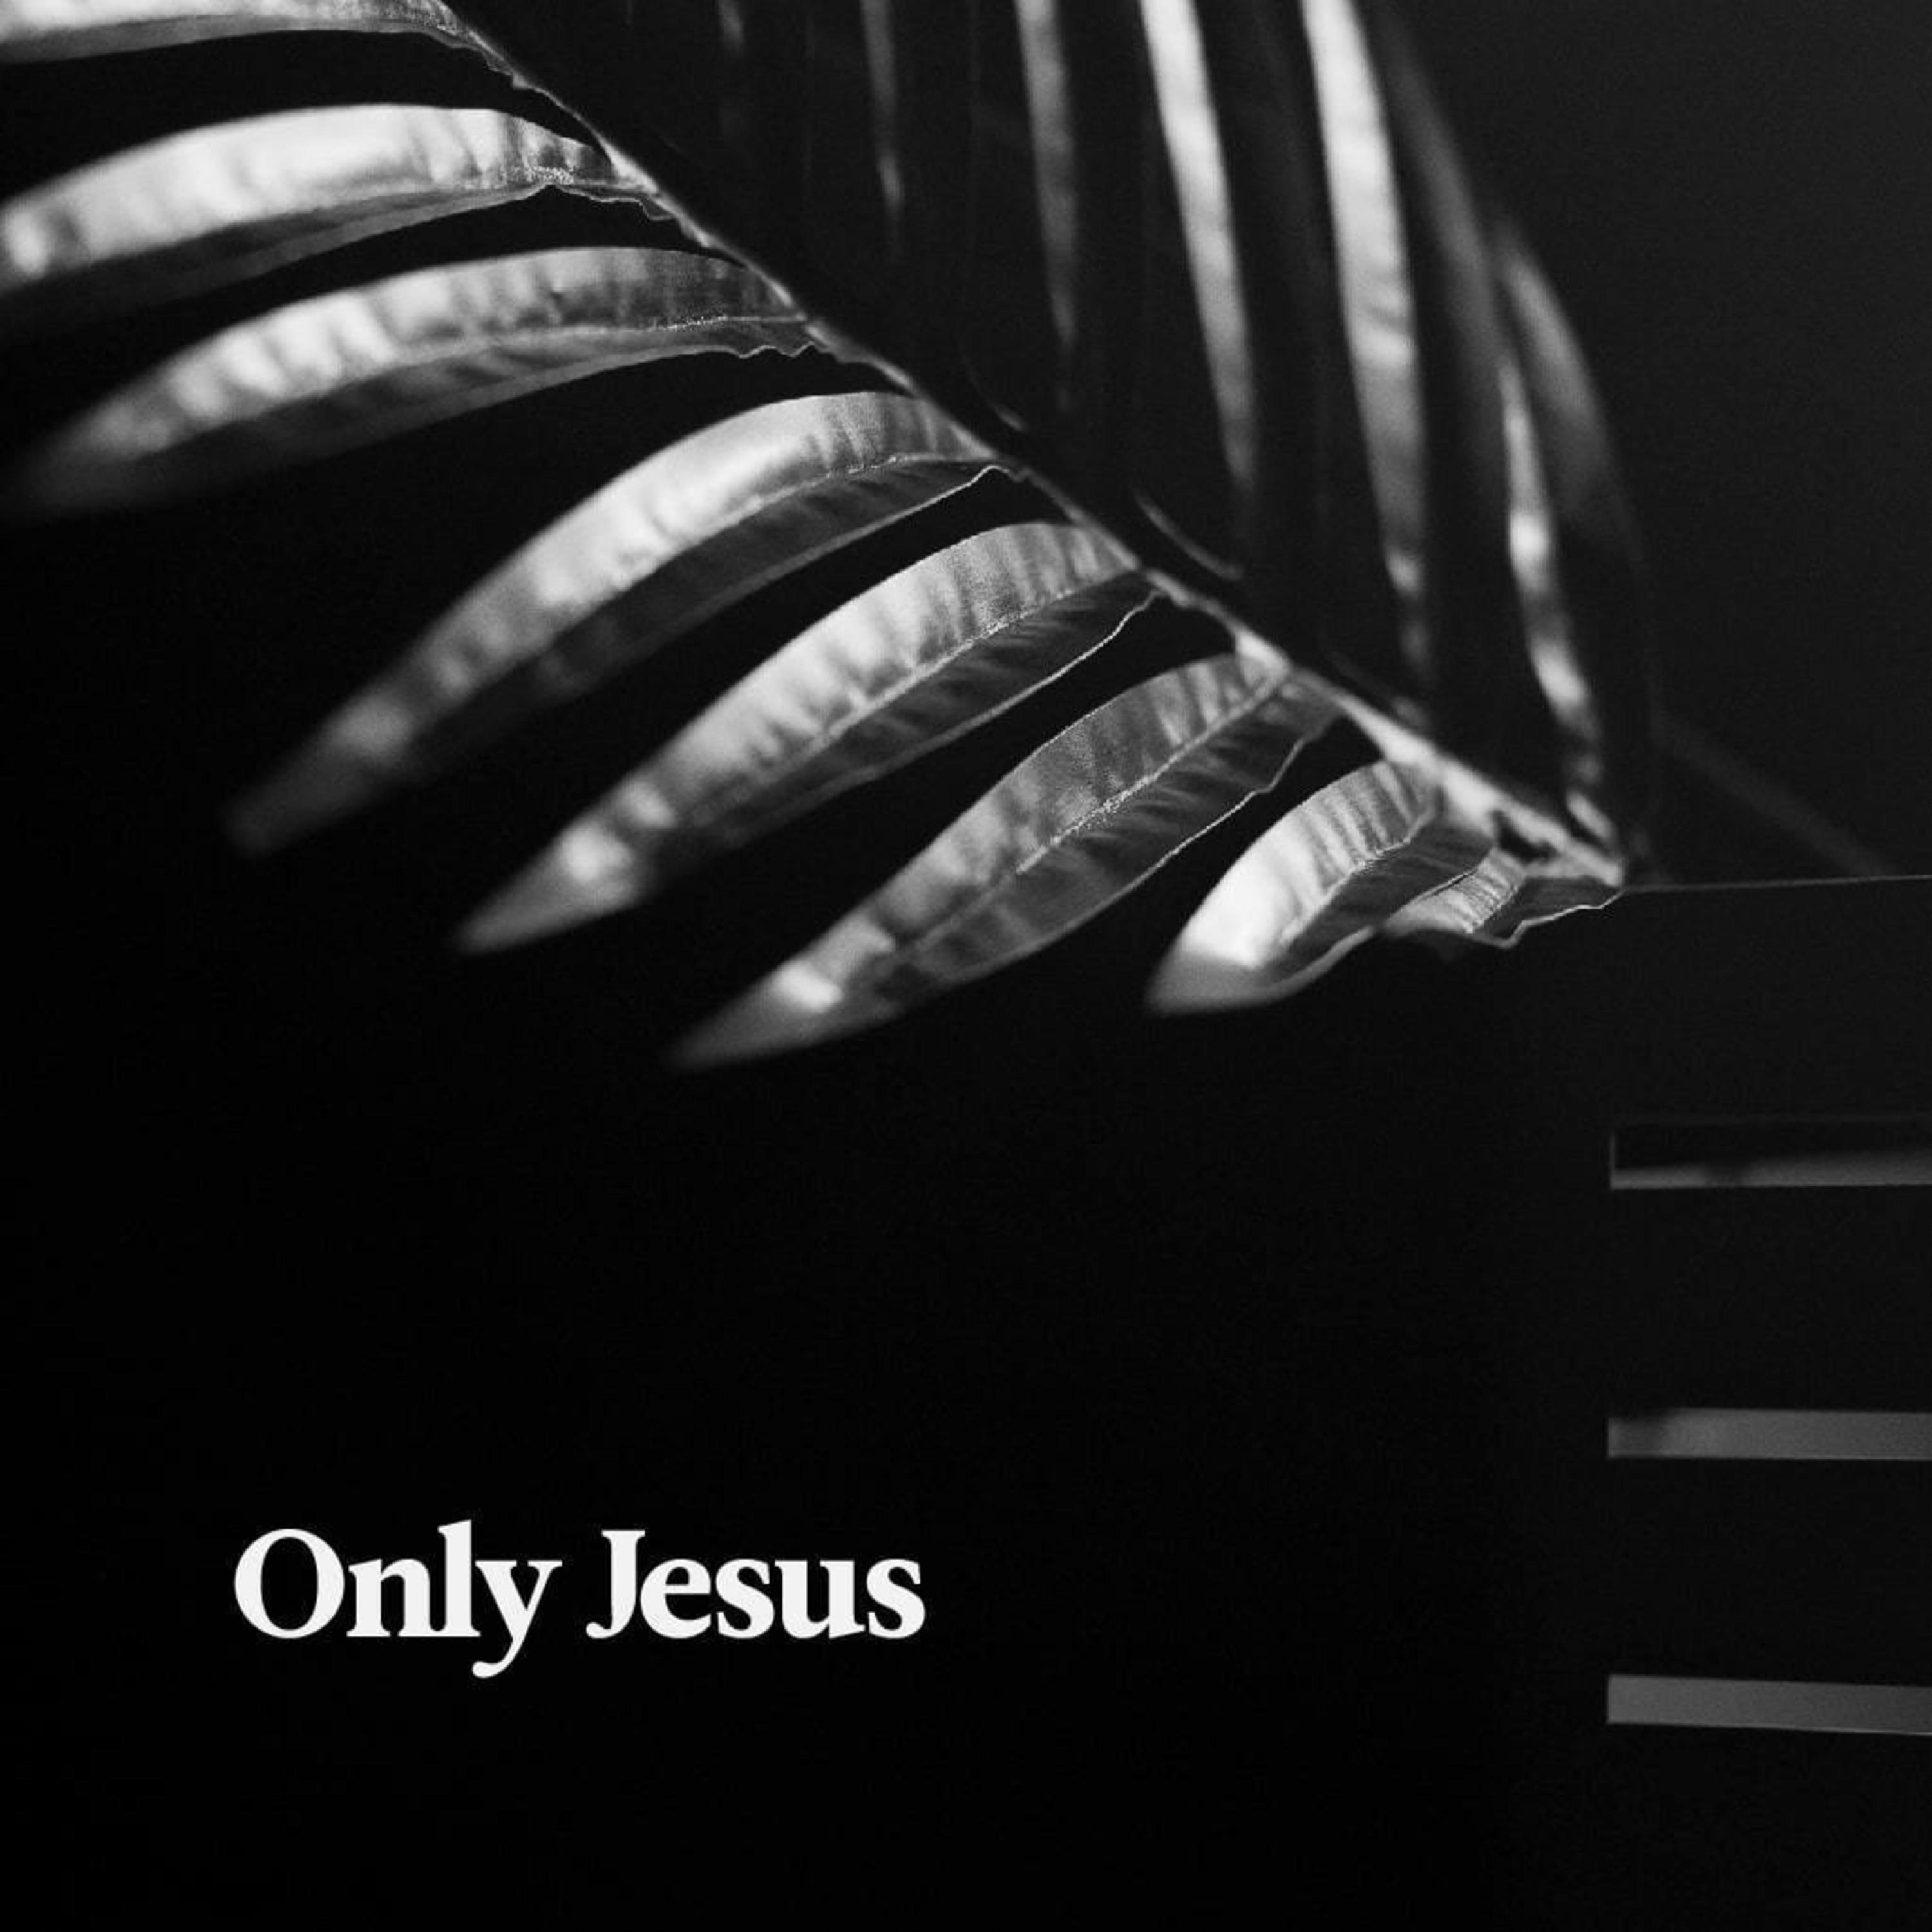 Only Jesus - Offers Sight